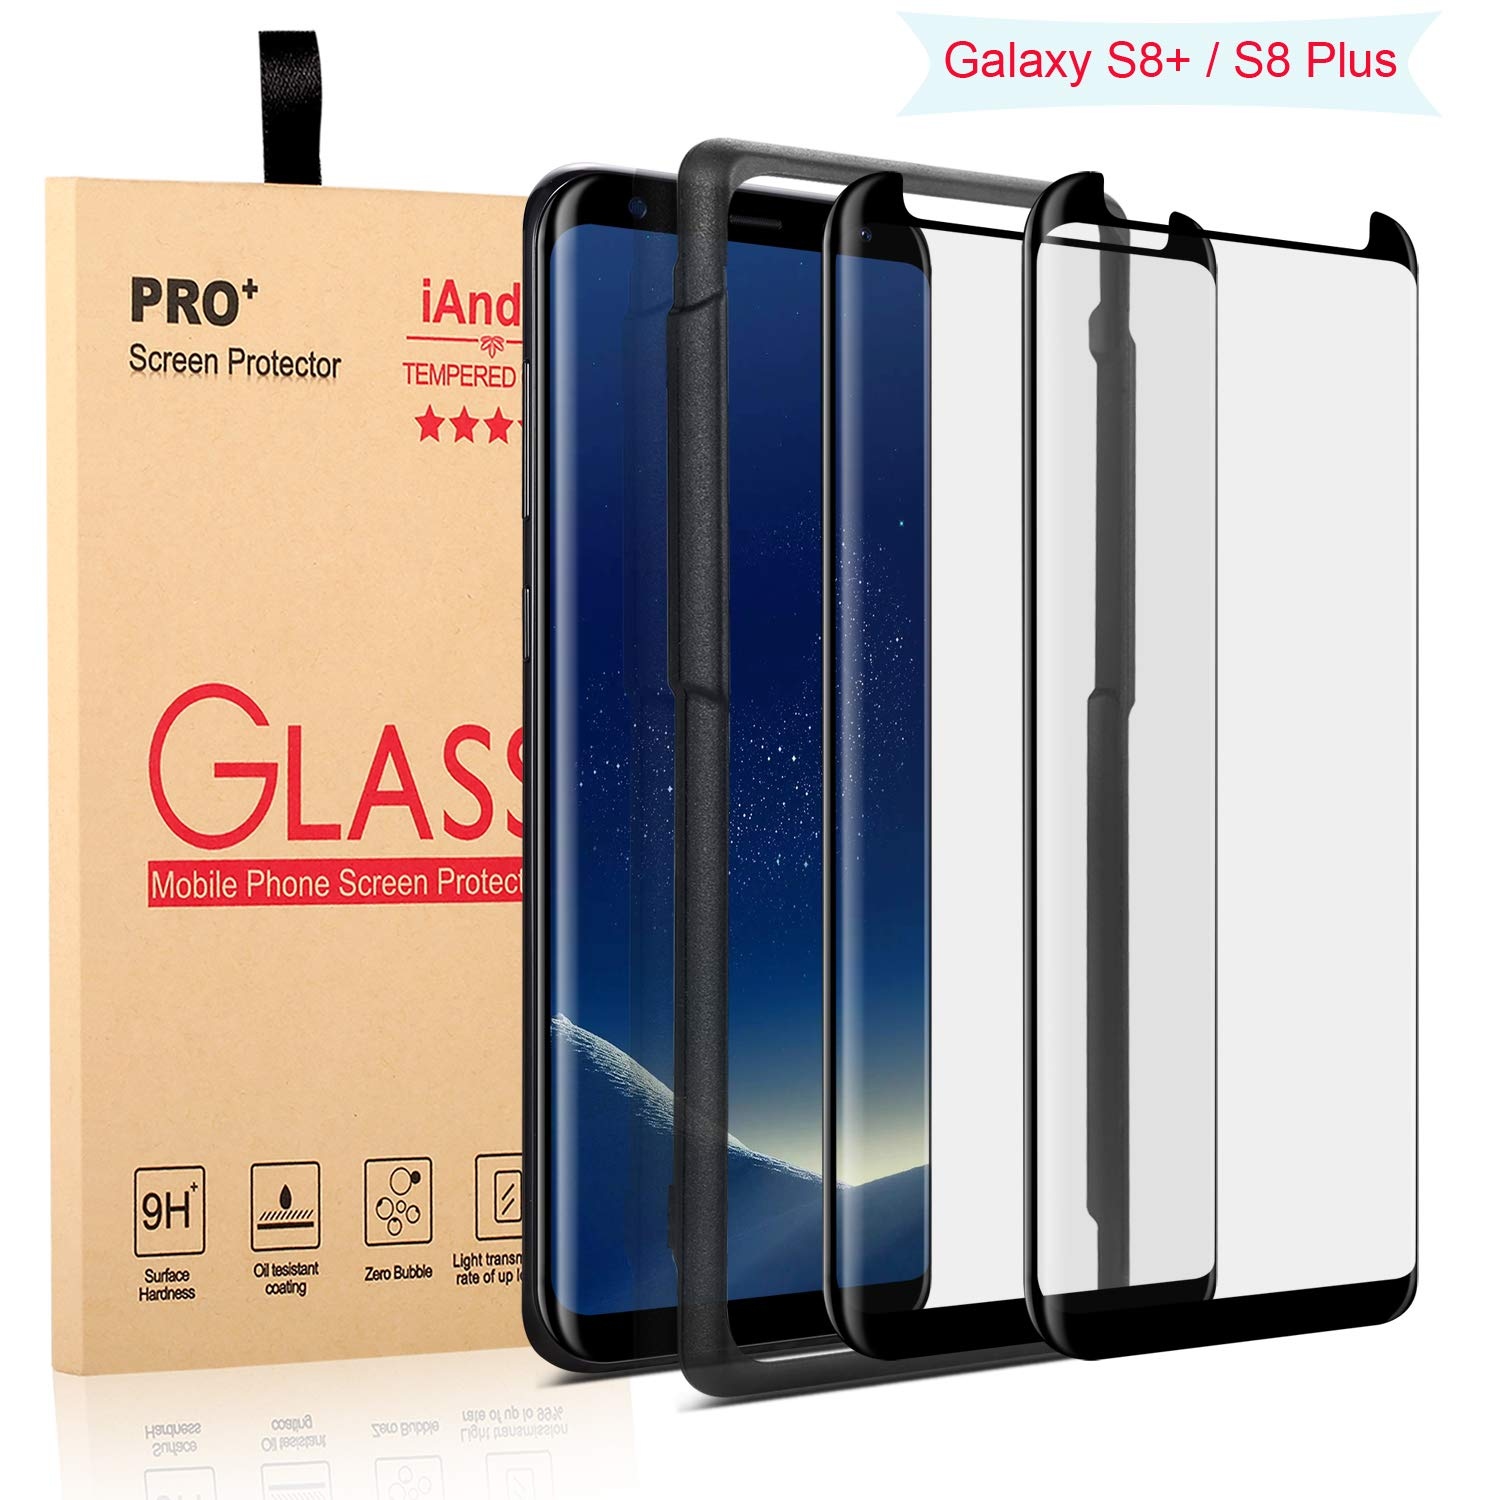 [2-PACK] Galaxy S8 Plus Screen Protector Glass [Easy Installation Tray], iAnder 3D Curved [Tempered Glass] Screen Protector for Galaxy S8 Plus S8+ [Case Friendly] by iAnder